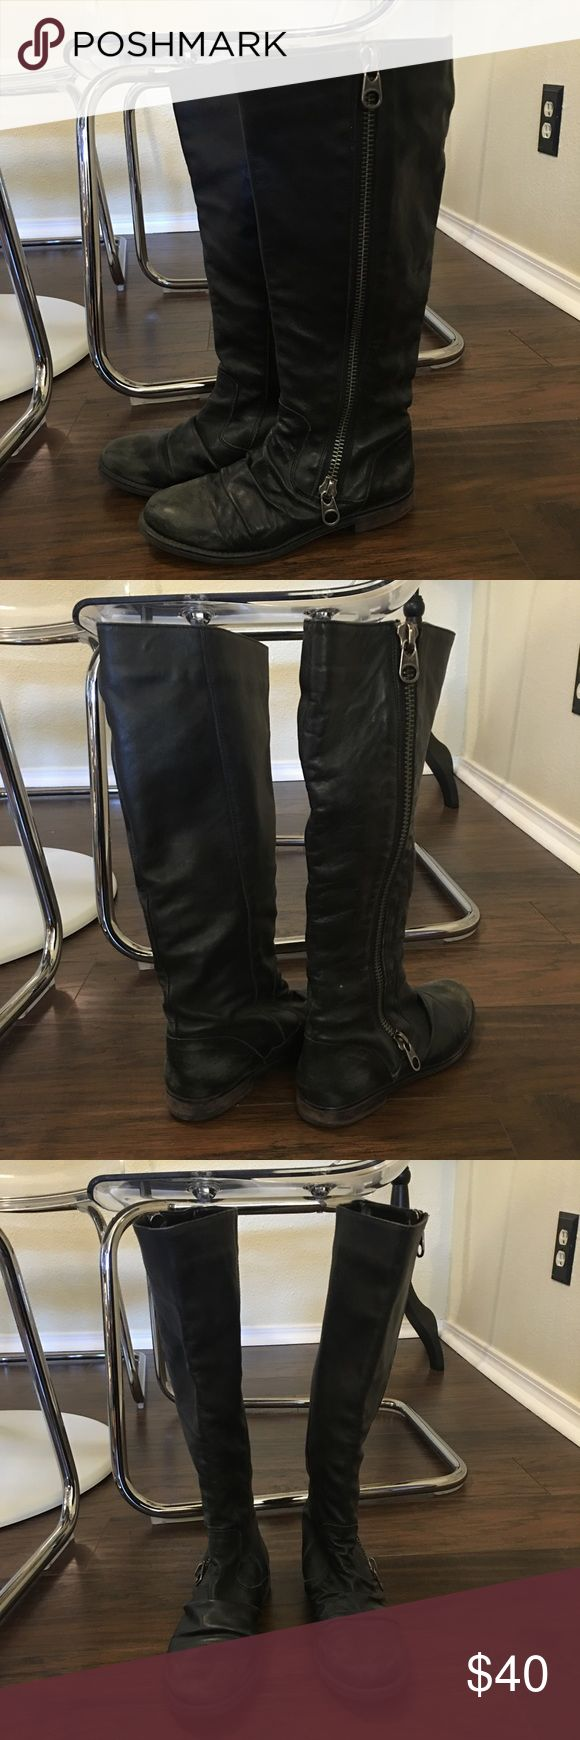 Steve Madden Moto boots Super cute and fun boots. Black with a distressed look. Very comfy. Worn but in good condition. Steve Madden Shoes